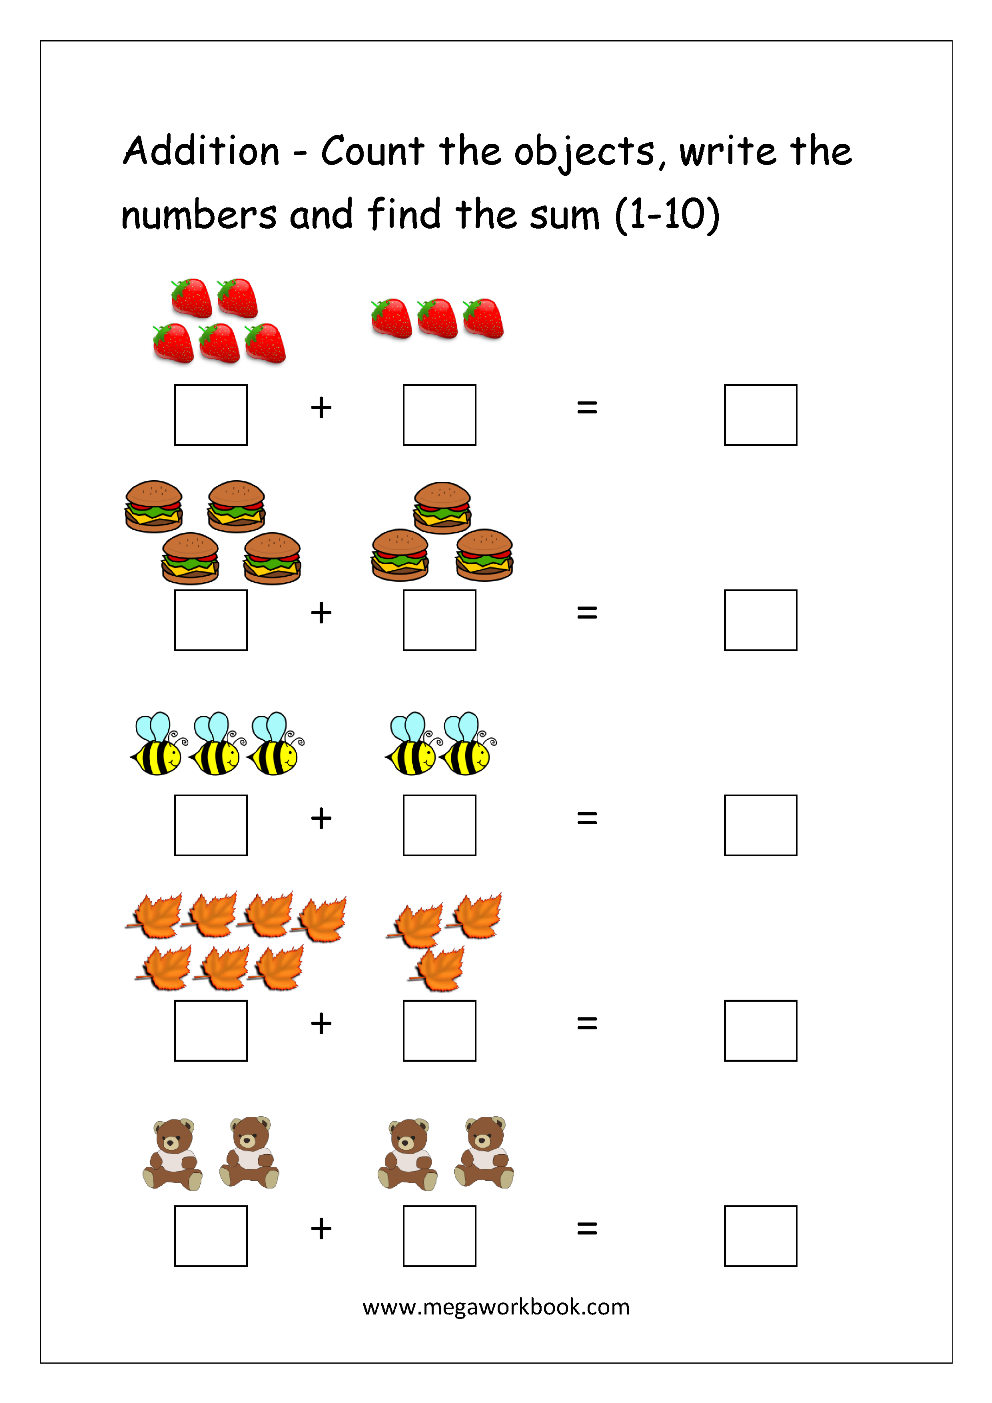 Free Math Worksheets - Number Addition - MegaWorkbook... Math ...